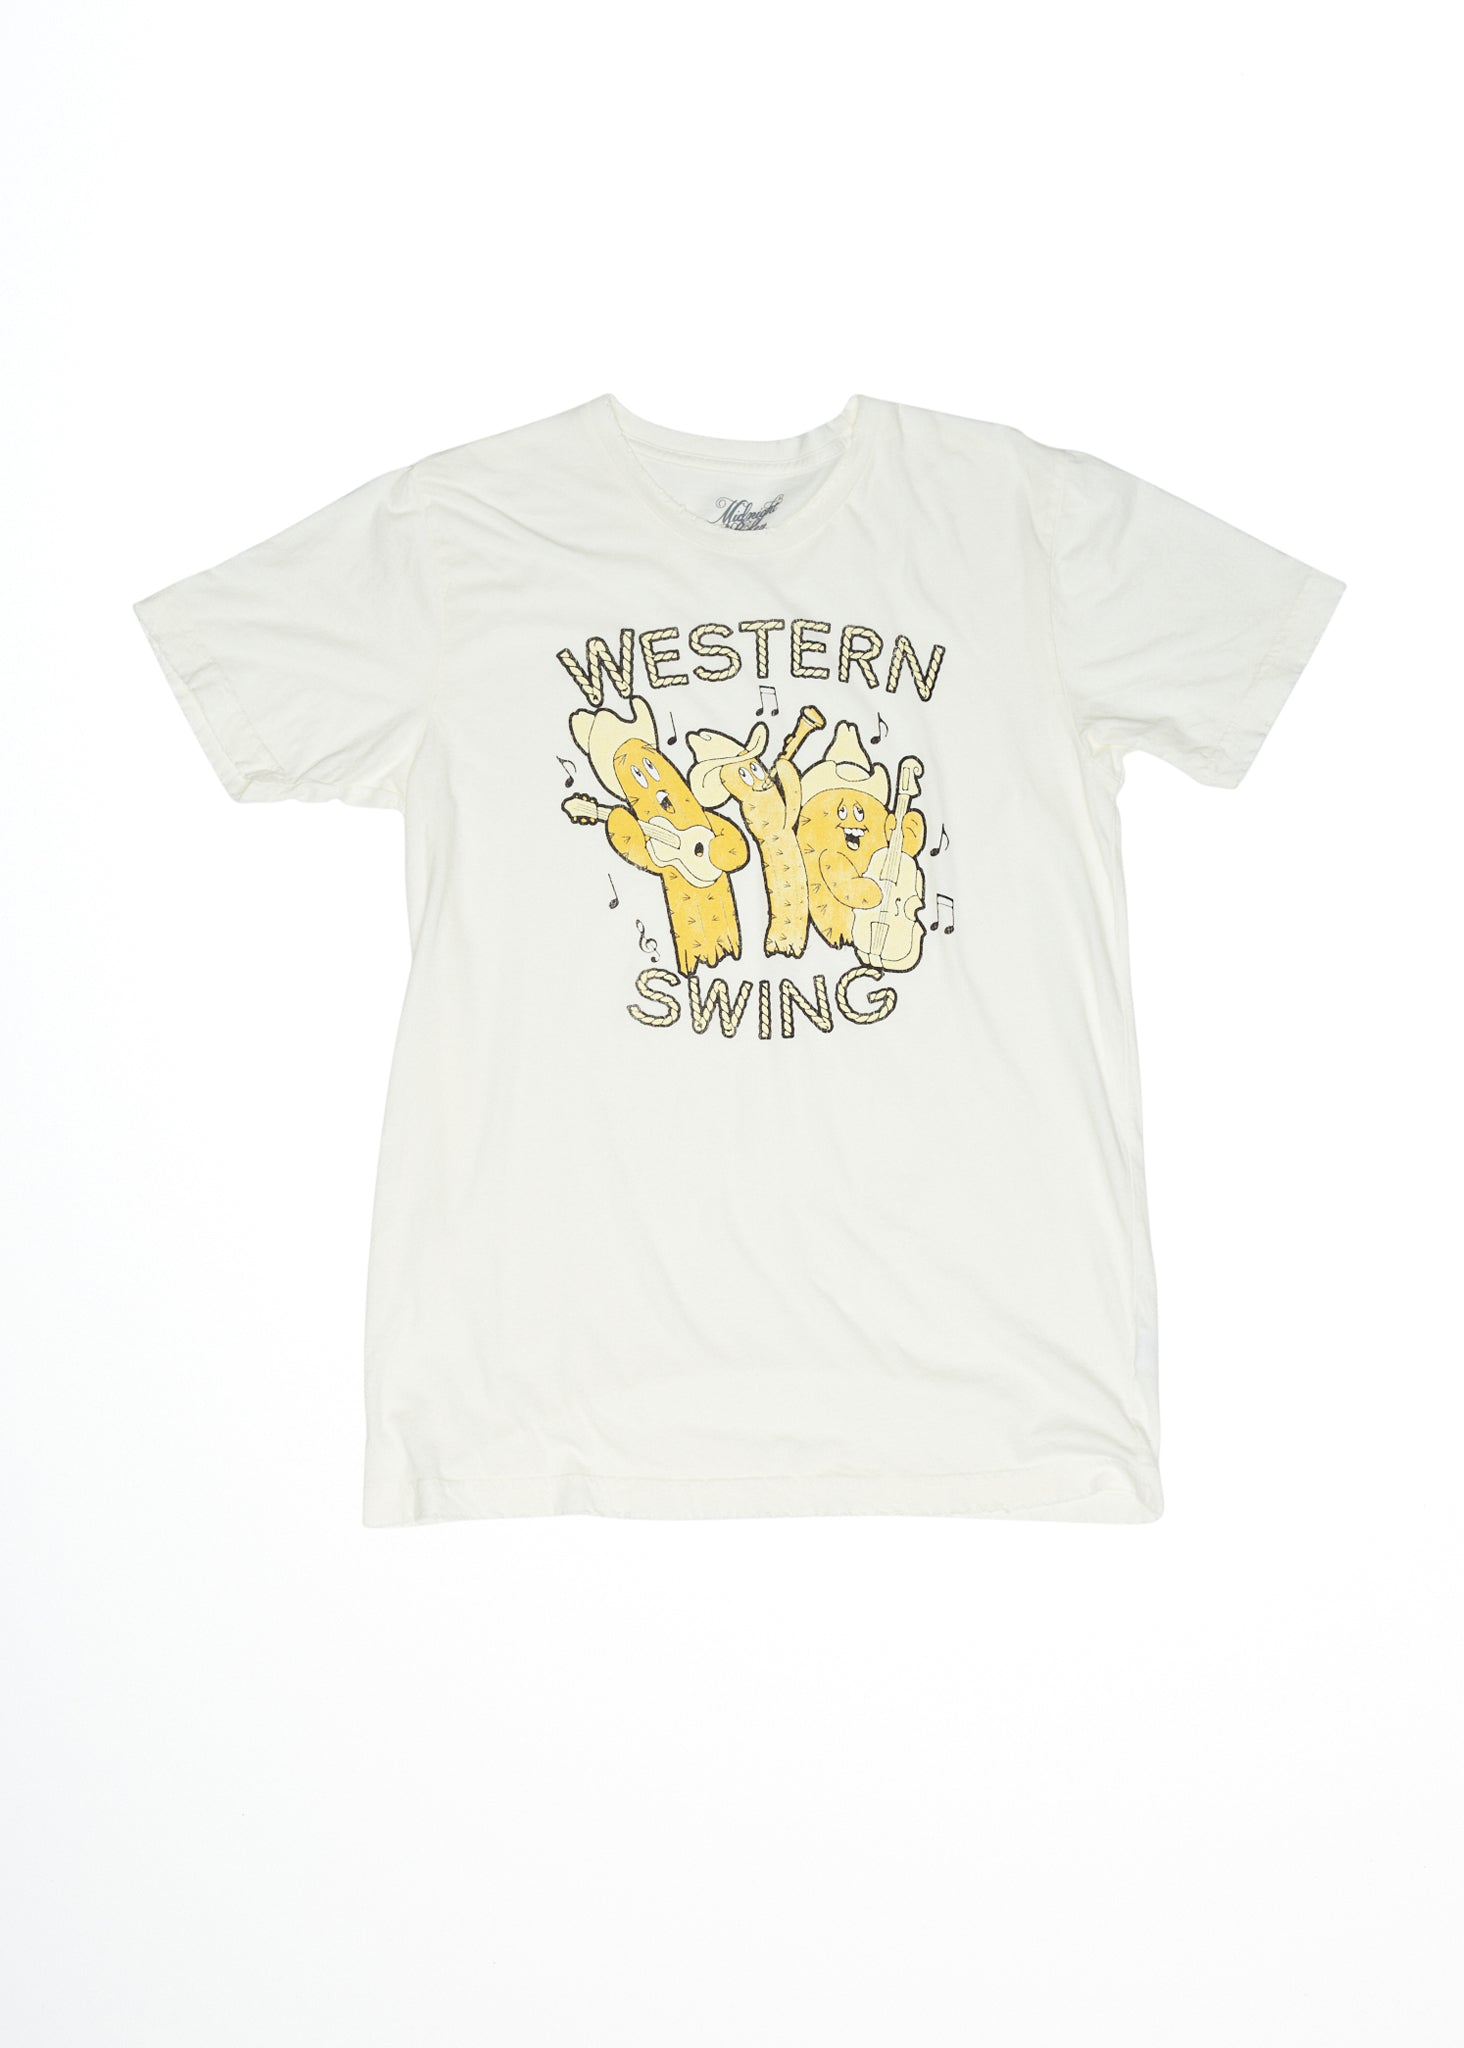 Western Swing Men's Tee - Men's Tee Shirt - Midnight Rider